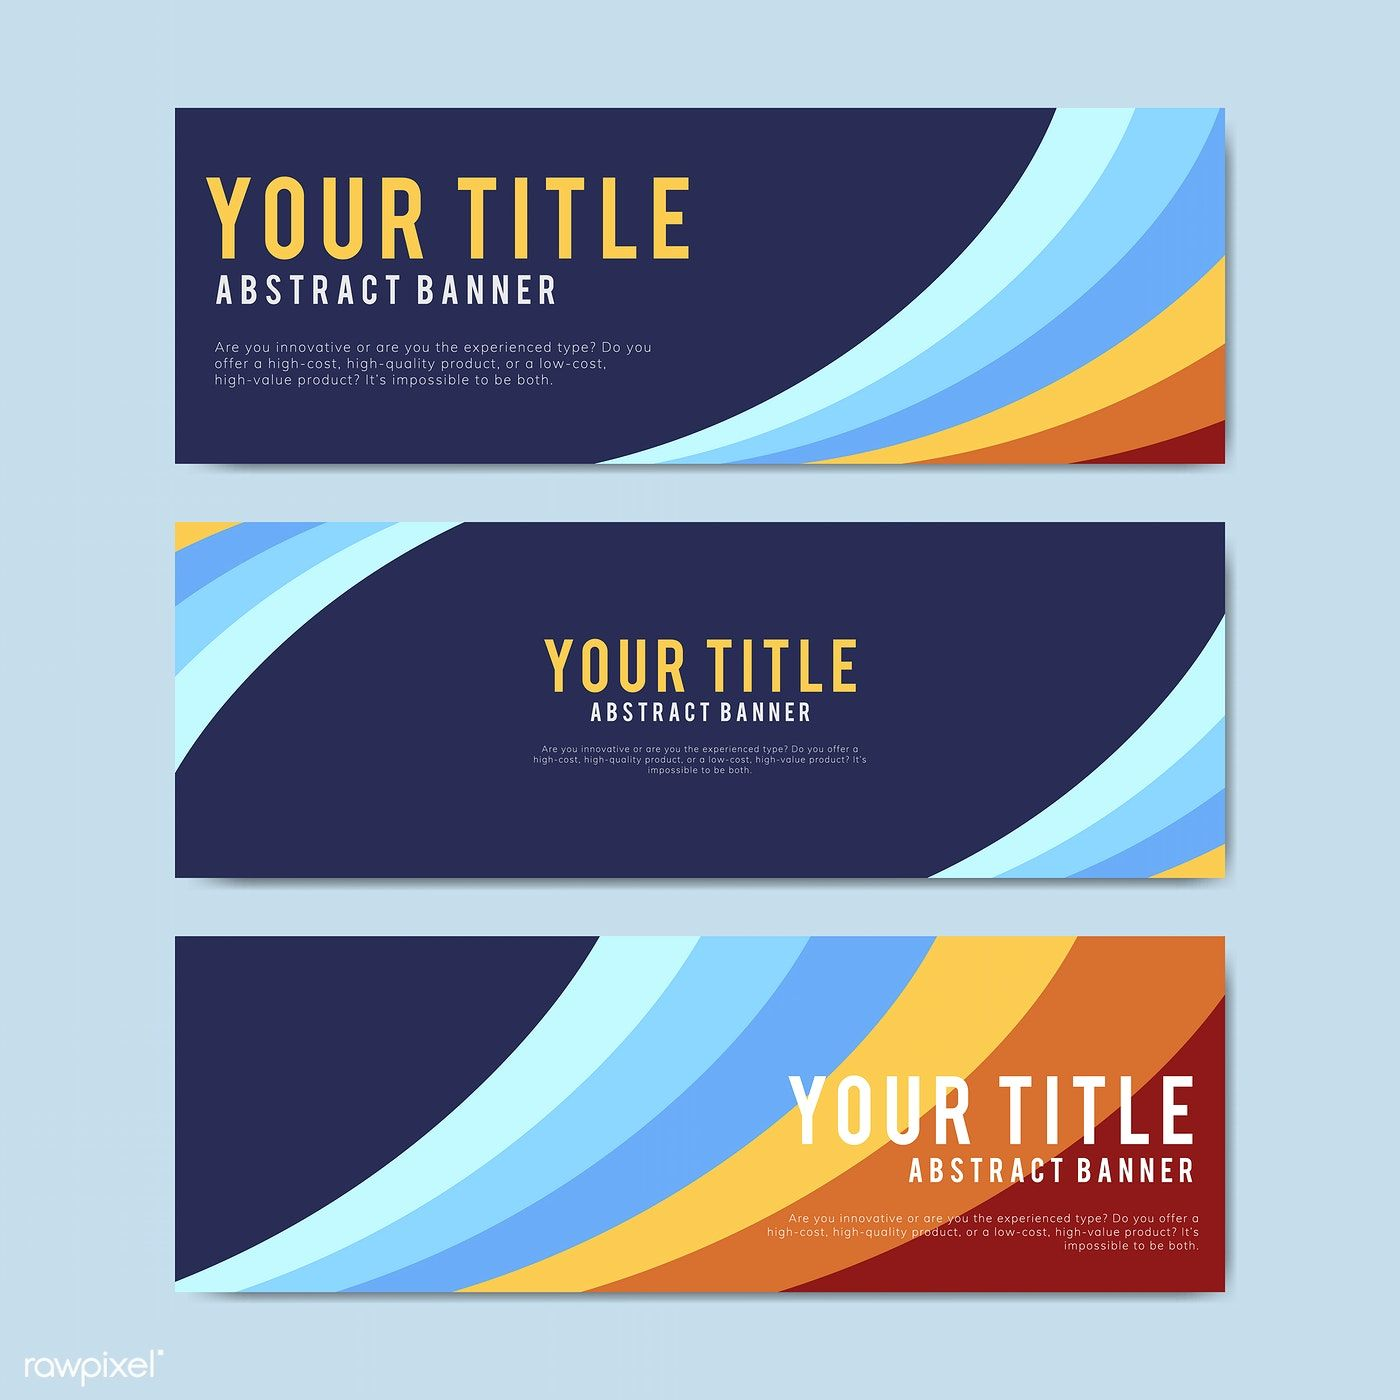 Colorful And Abstract Banner Design Templates Free Image By Rawpixel Com Banner Template Design Website Banner Design Banner Design